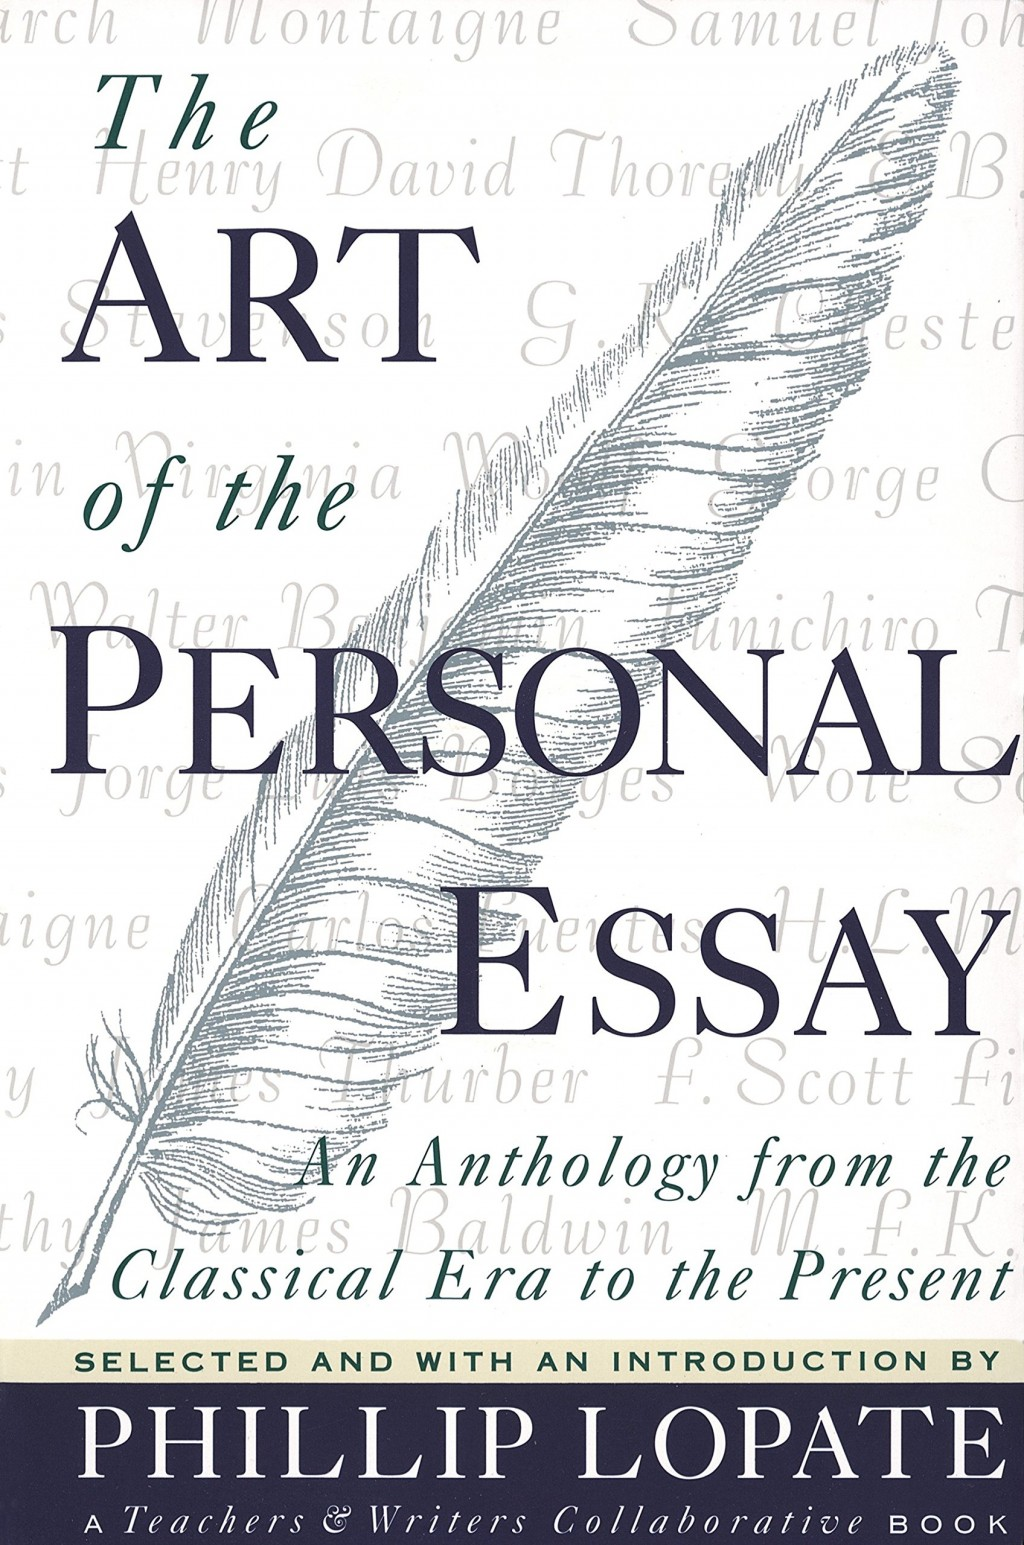 001 91bxbkzxmml The Art Of Personal Essay Beautiful Phillip Lopate Table Contents Sparknotes Large